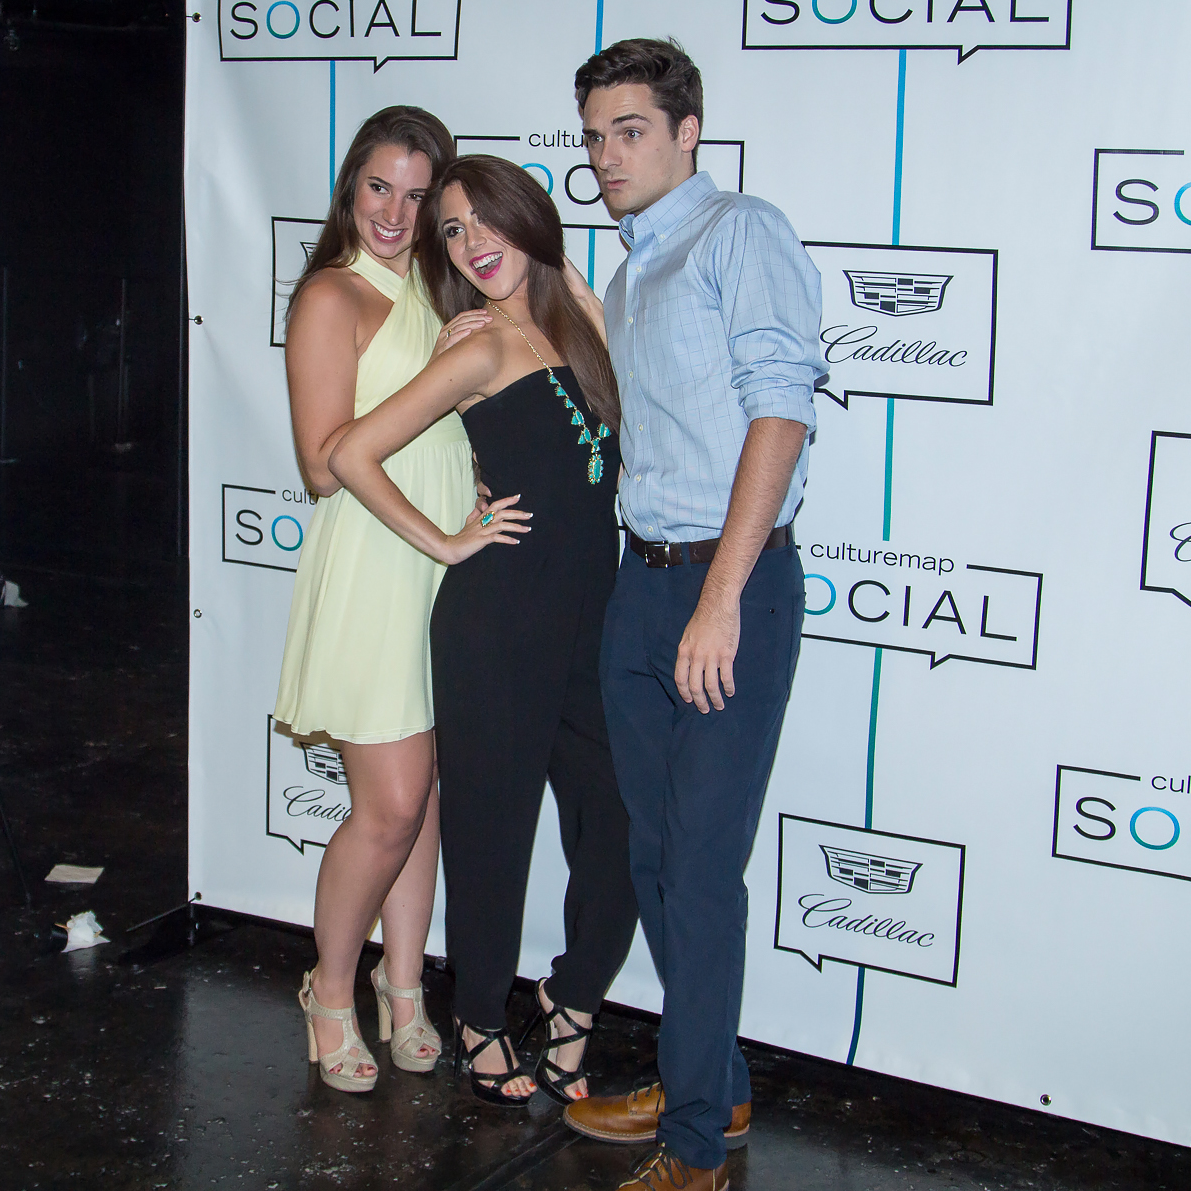 Photo booth at CultureMap Dallas Music Social 2015